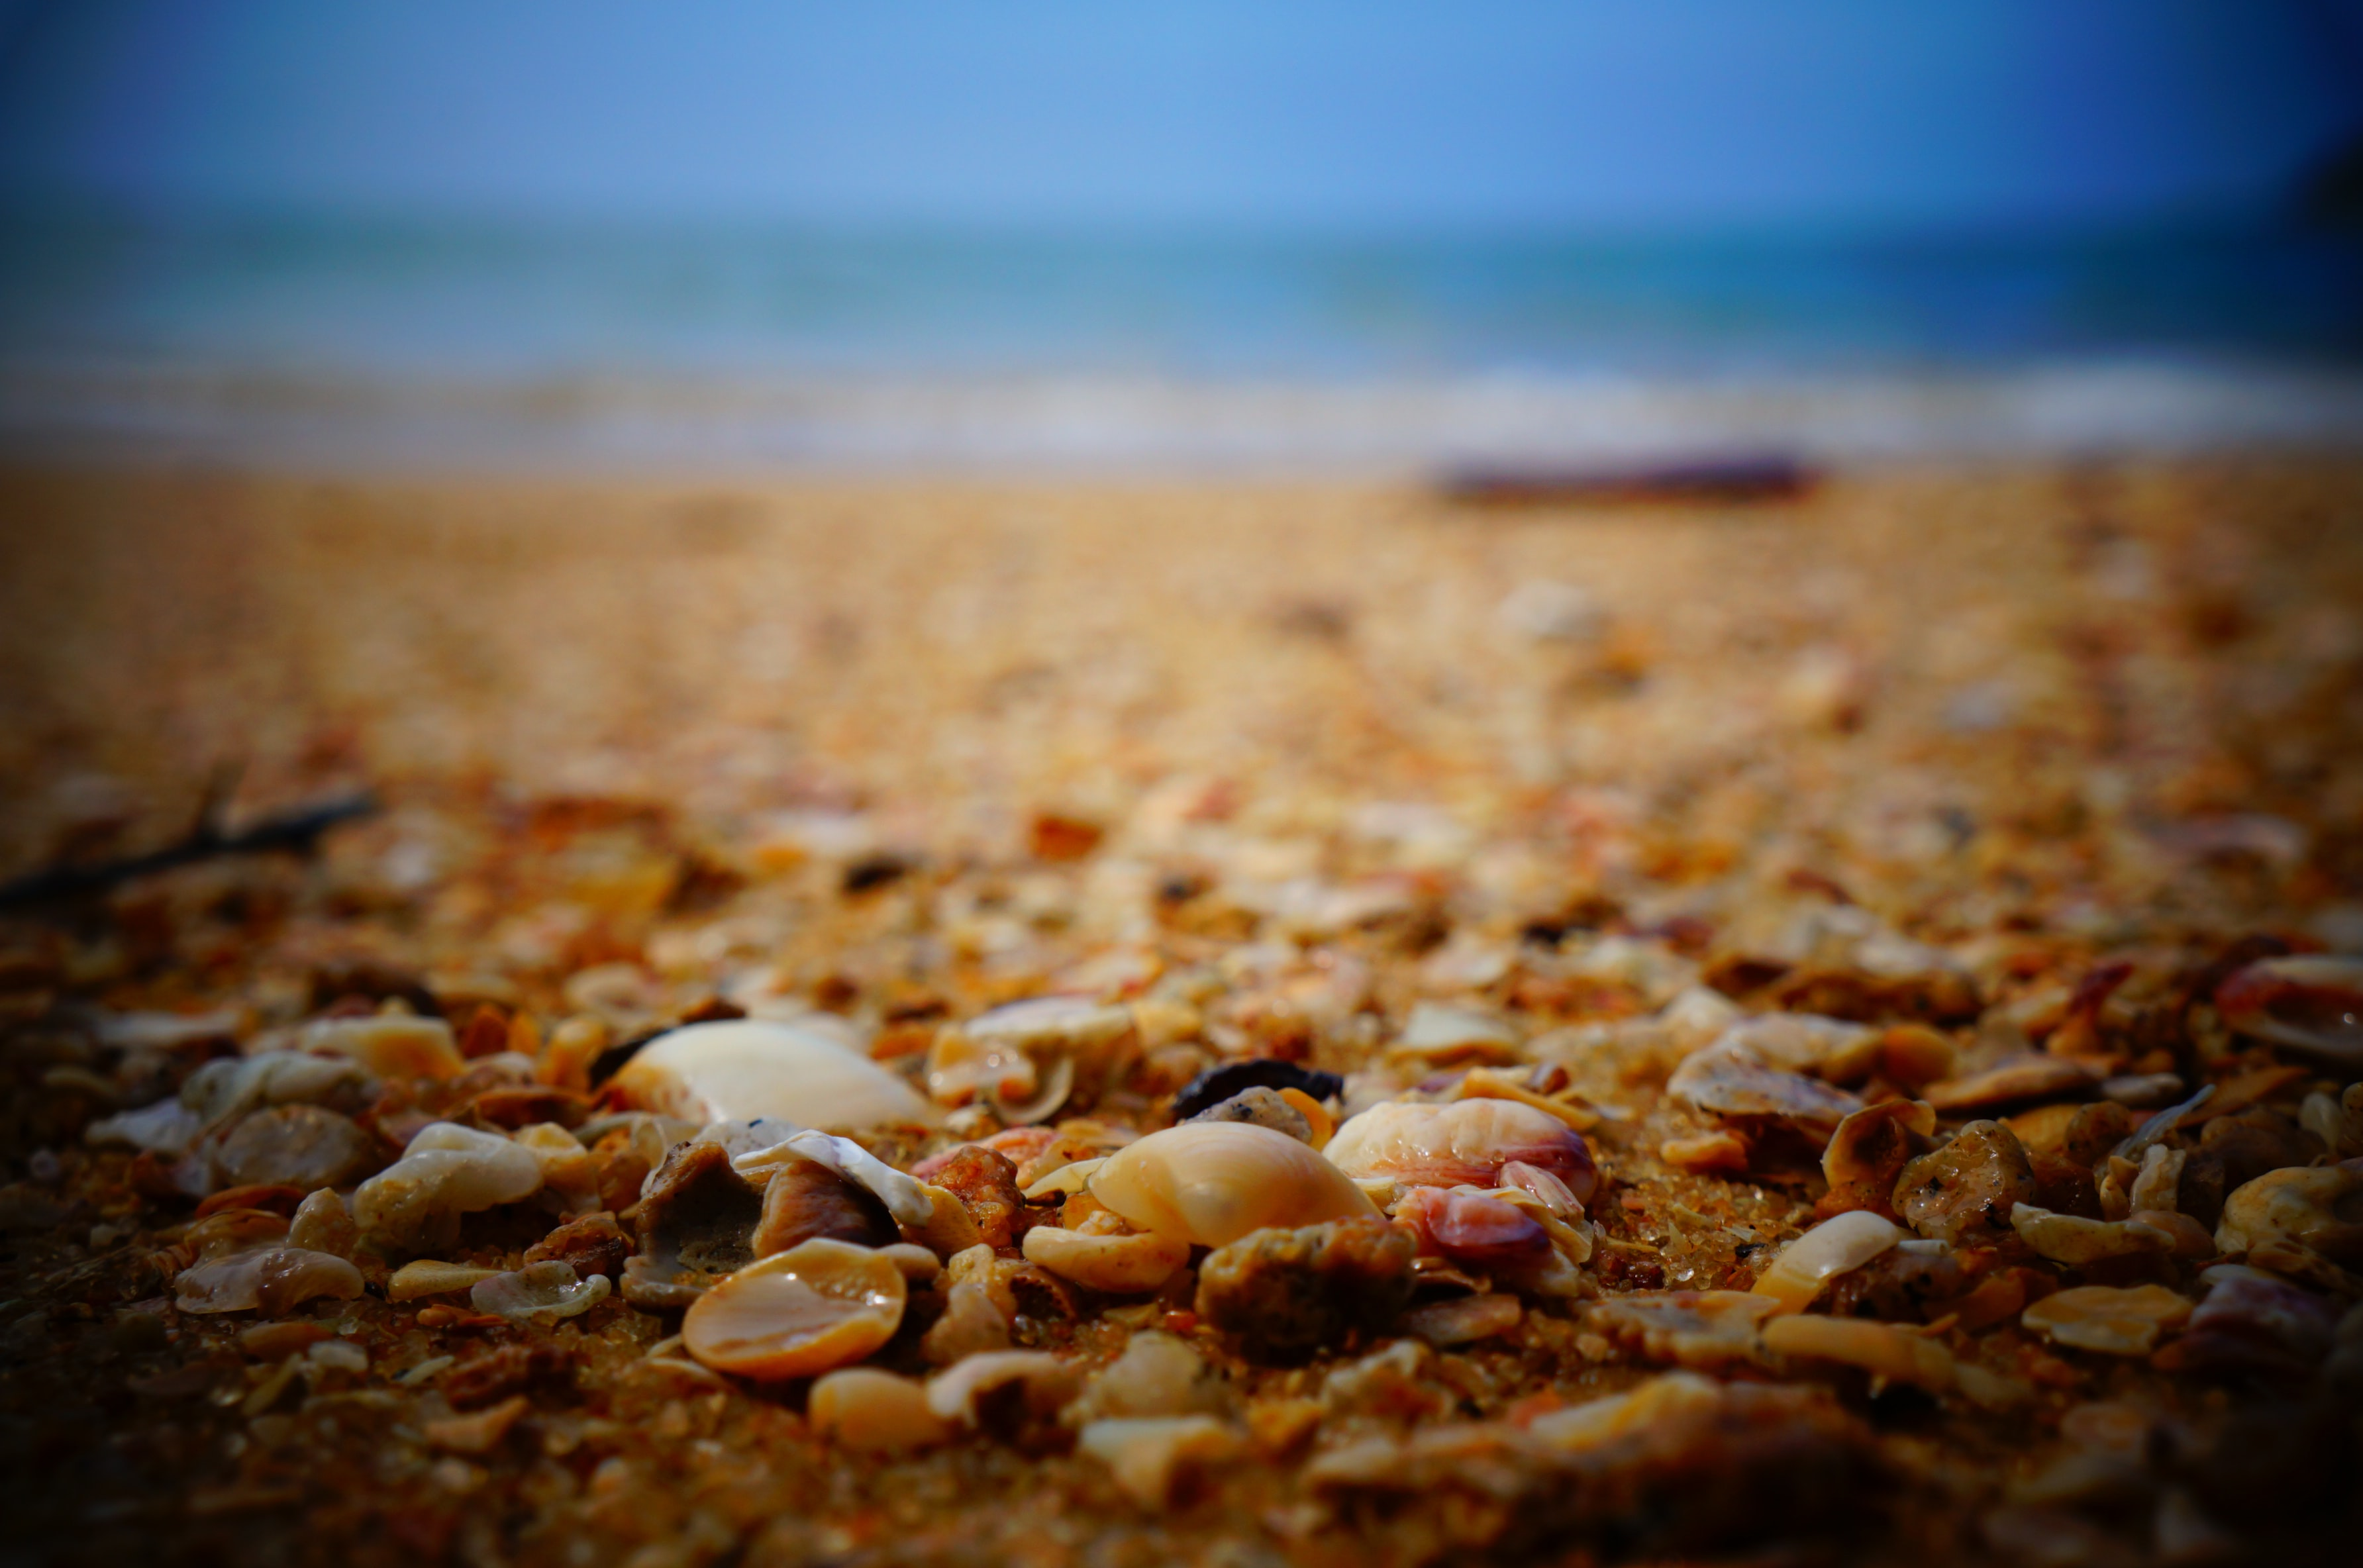 Empty shells in focus on the beach